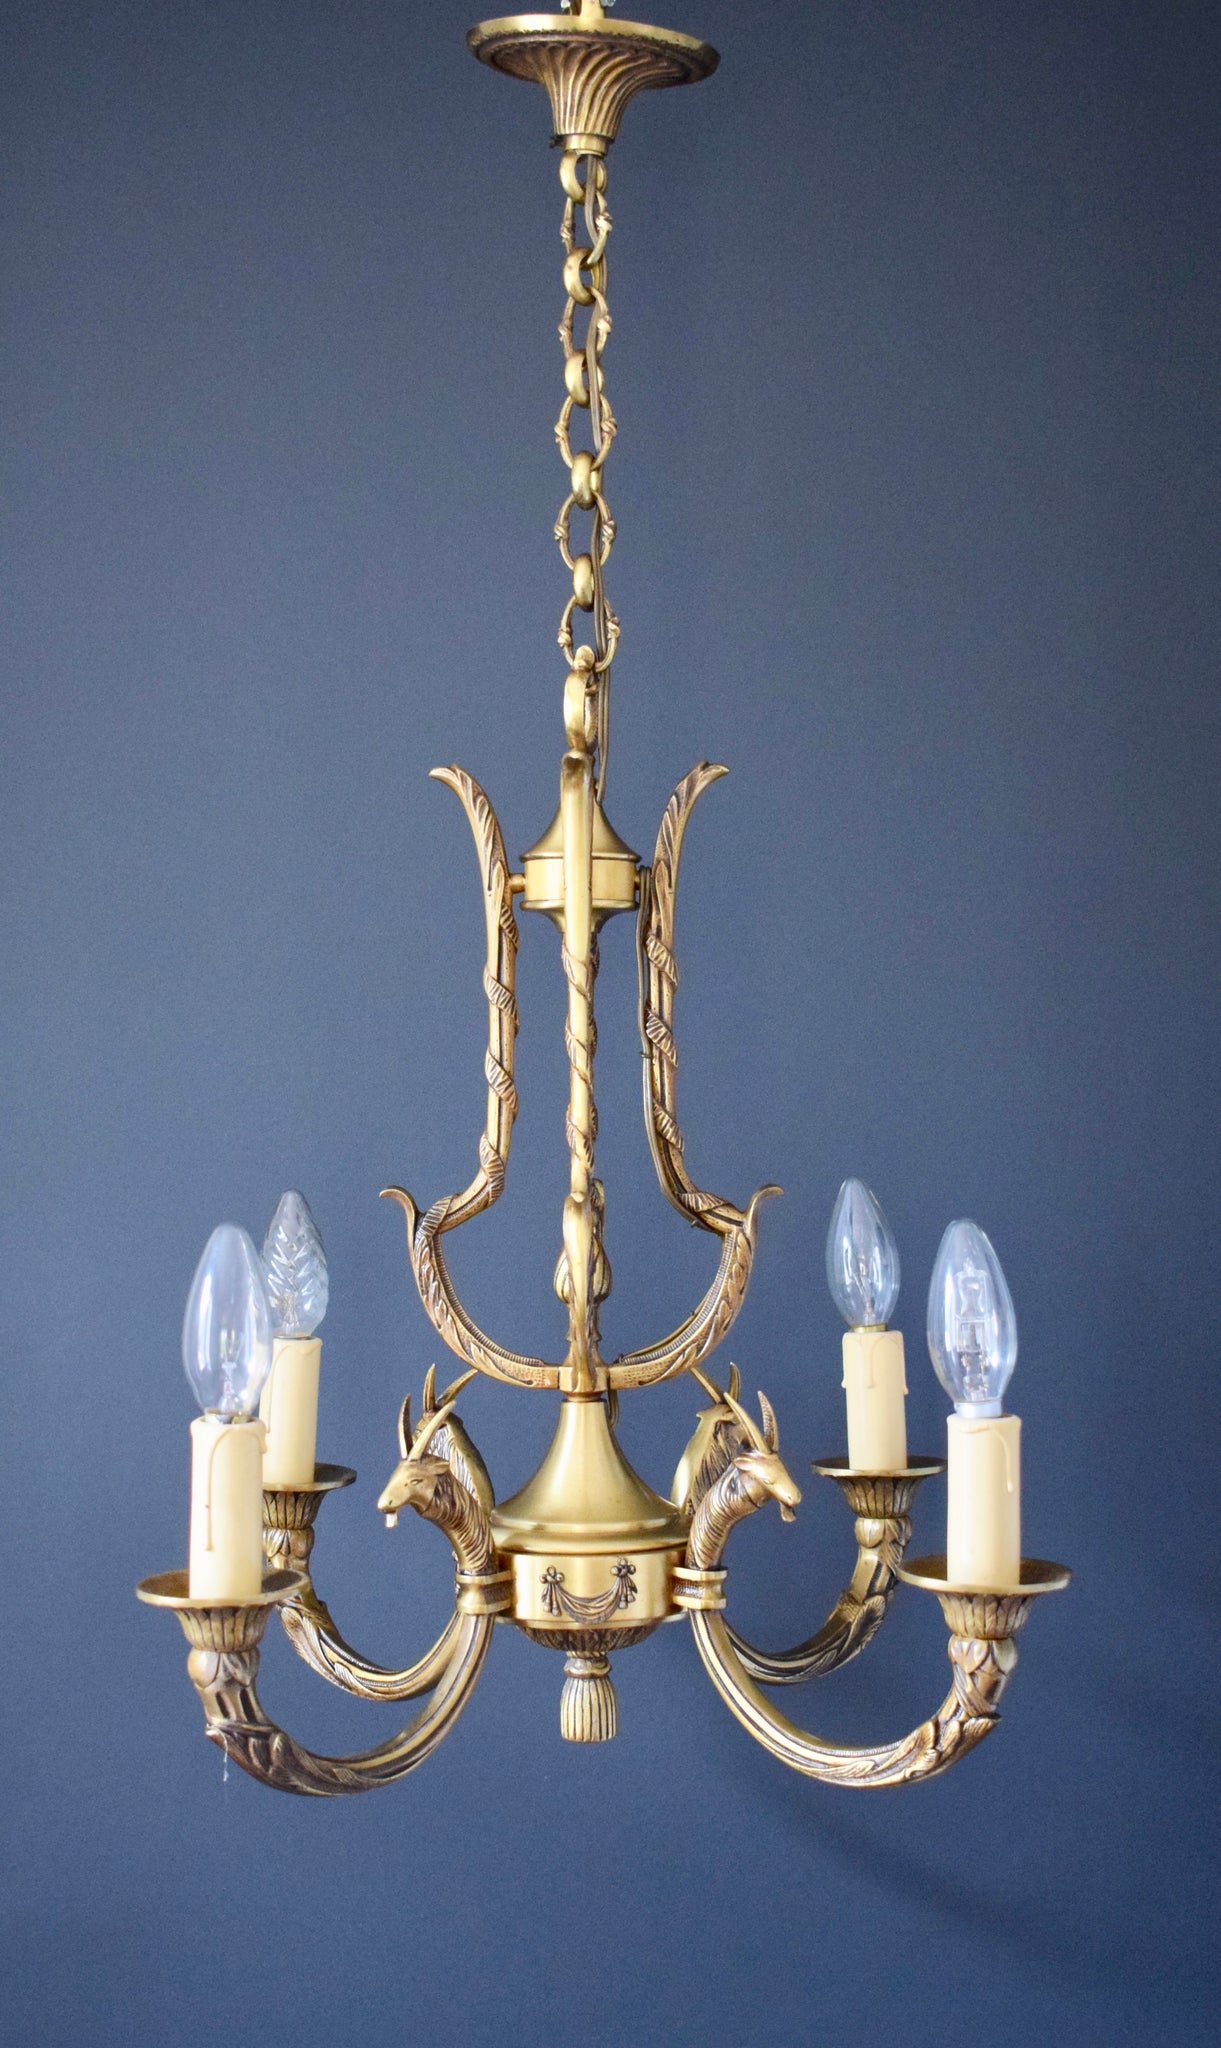 Louis XVI Style French Bronze Chandelier with Ram Heads 4 Lights